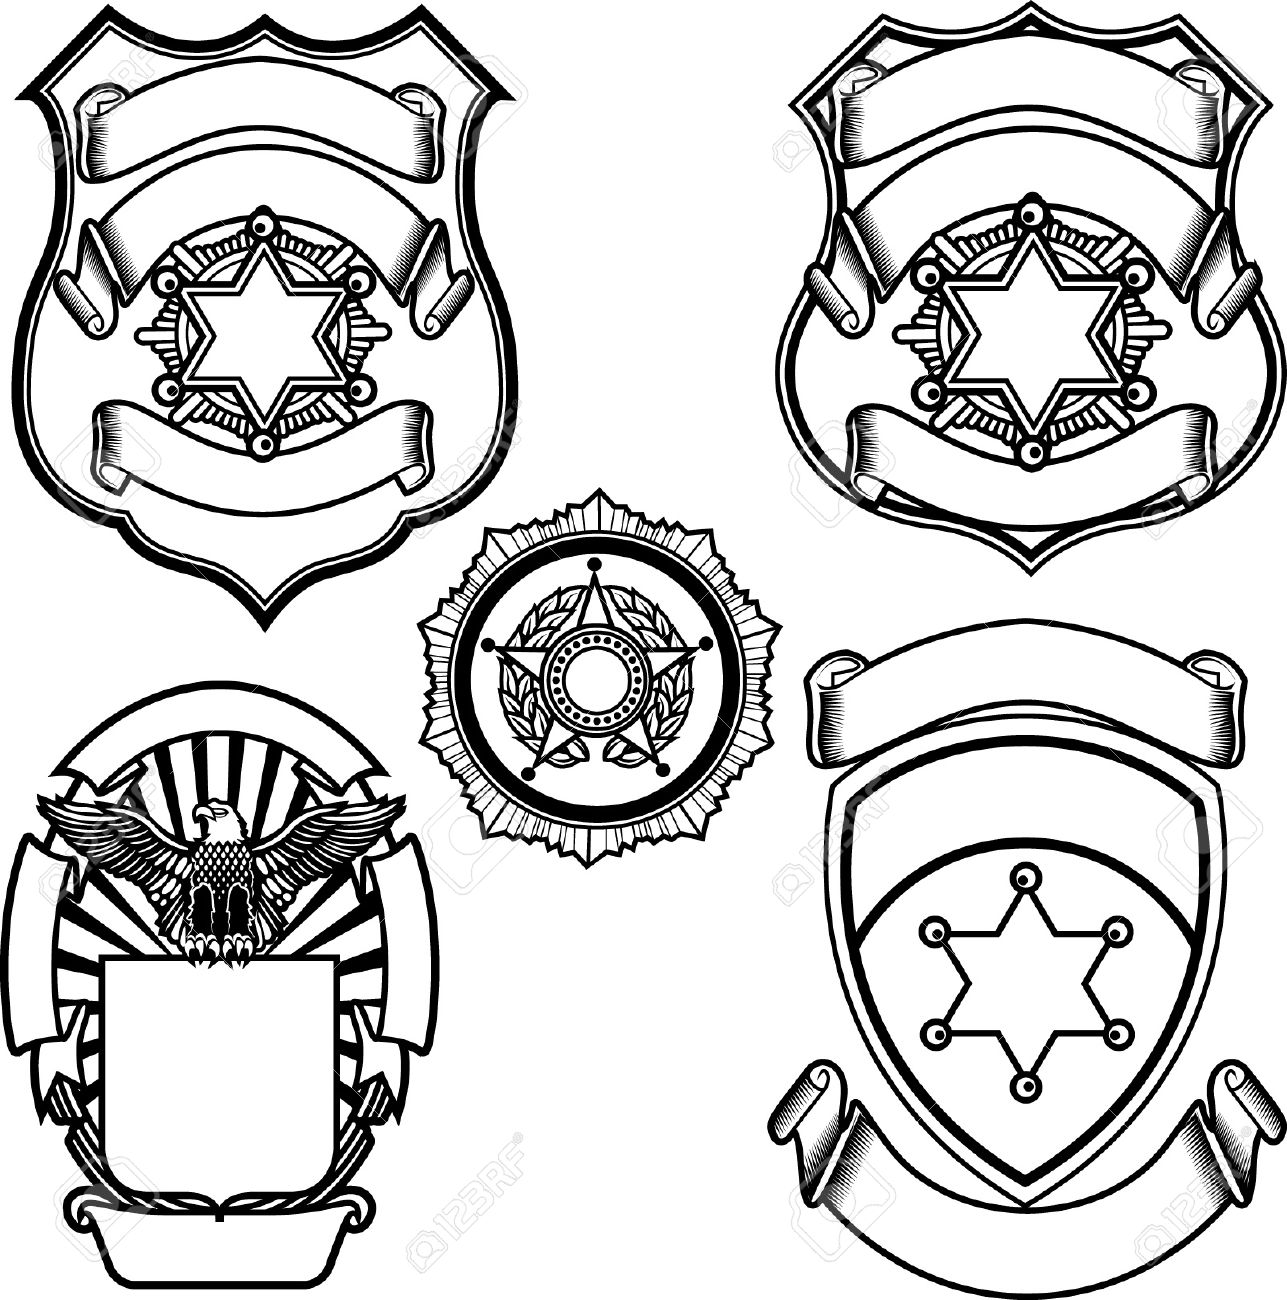 Vector Illustration Of Sheriff Badge Royalty Free Cliparts, Vectors ...